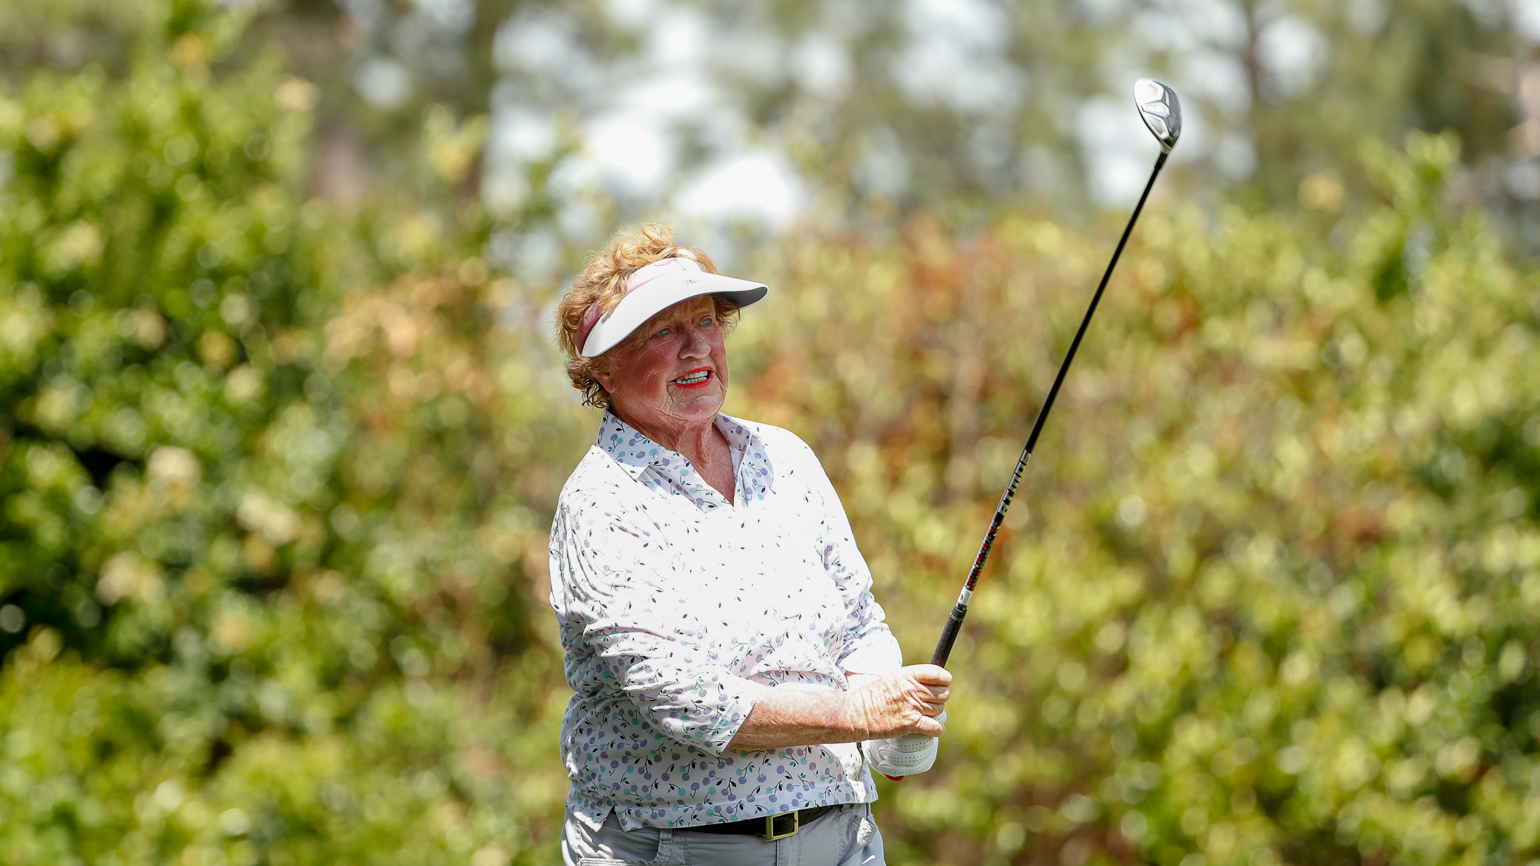 Even at 80, Carner's Competitive Fire Still There